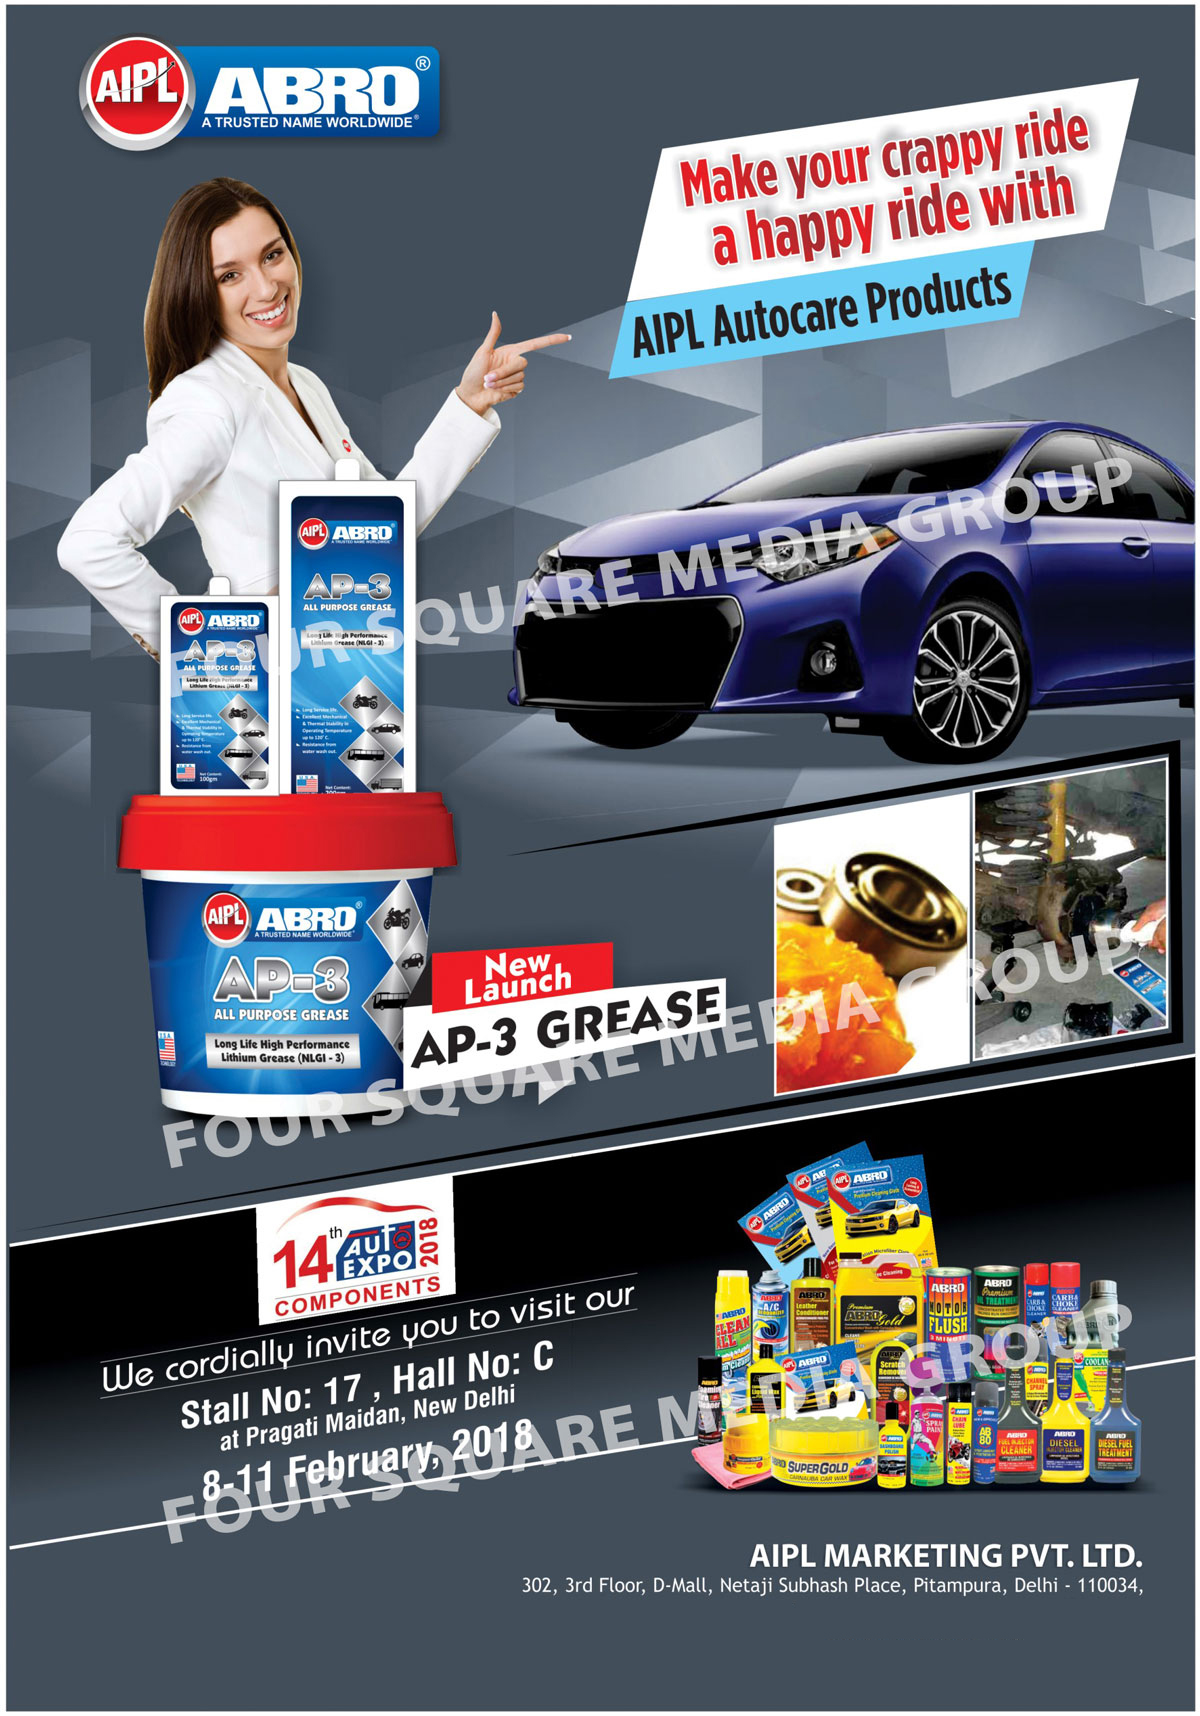 Autocare Products, Auto Care Products, Wheel Cleaners, Diesel Fuel Treatment, Automotive Liquid Wax, Scratch Cleaner, Car Care Products, Fuel Injector Cleaners, Foaming Tire Cleaners, Dashboard Polishes, Diesel Injector Cleaners, Car Wax, Oil Treatments, Construction Chemicals, Waterproofing Products, Crack Fillers, Waterproofing Masters, Grinding Wheels, Cut off Wheels, Abrasive Products, Premium Tapes, Spray Paints, Silicone Sealants,Air Freshener, DCD Wheels, Liquid Wax, Motor Flush, Scratch Remover, Wash N Glo, Cut Off Wheel, Cloth Roll, Aluminum Fiber Discs, Radiator Coolant, Engine Coolant, Motor Oil, Shock Master, Motorcycle Oil, Gear Lube, Motor Oil, Two Wheeler Batteries, Insulation Tape, Mirror Mounting Tape, Structure Glazing Tape, Duct Tape, Aluminium Tape, Maskting Tape, PTEF Thread Sealing Tapes, General Purpose Silicone Sealant, Premium Gold Car Wash, Windshield Cleaner, Anti-Freeze Concentrate, Silicon Cleaner, Siliconized Tire Shine, Radiator Flush, Diesel  Fuel Injector Cleaner, Power Steering Fluid, Chain Lube, Gasket Remover, Engine Oil Stop Leak, Octane Booster, Smoke Stop, Dashboard Polices